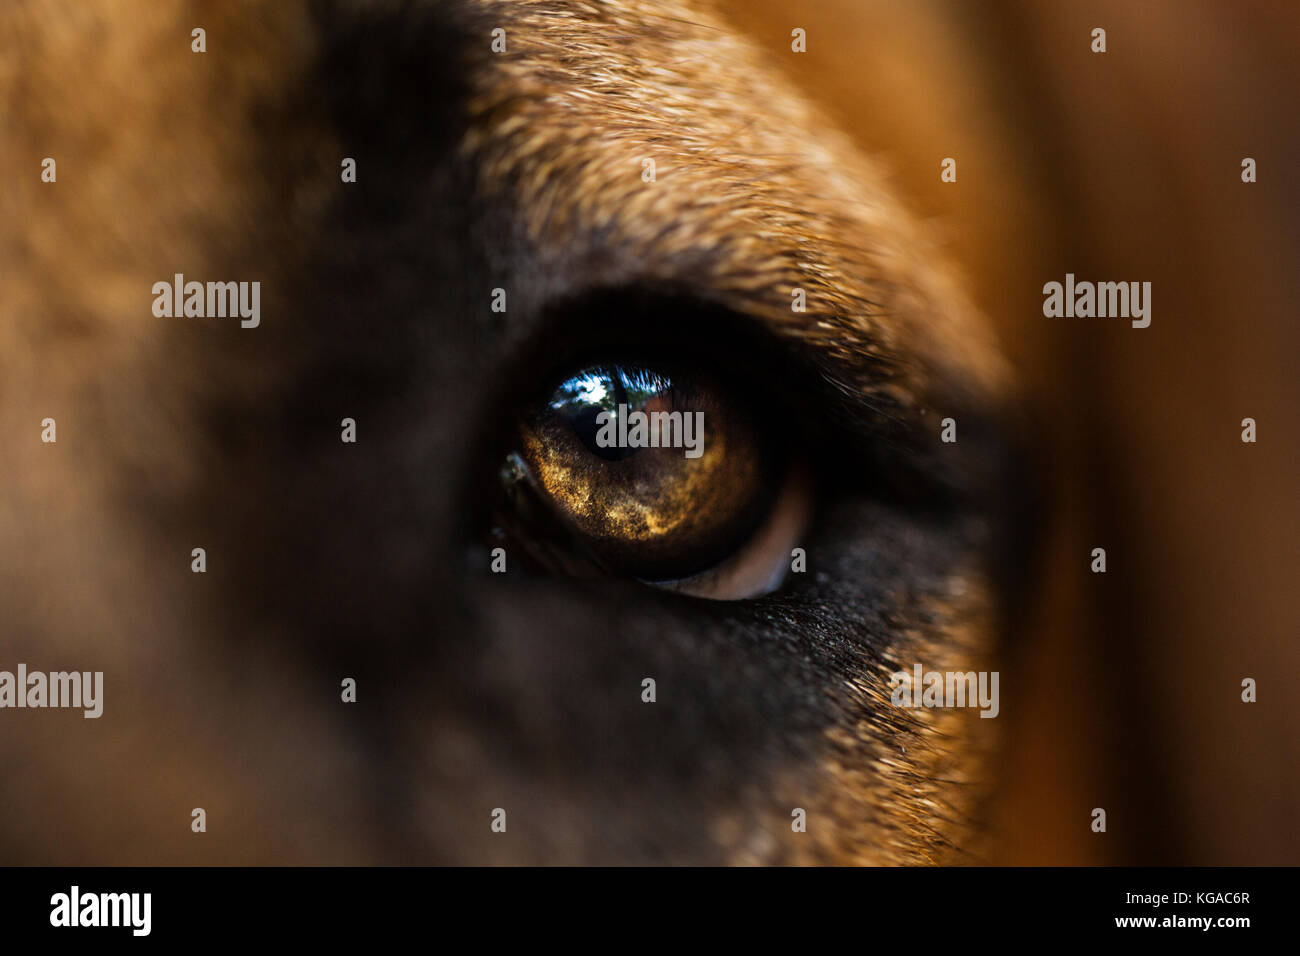 Macro photograph of a boerboel puppies eye. - Stock Image